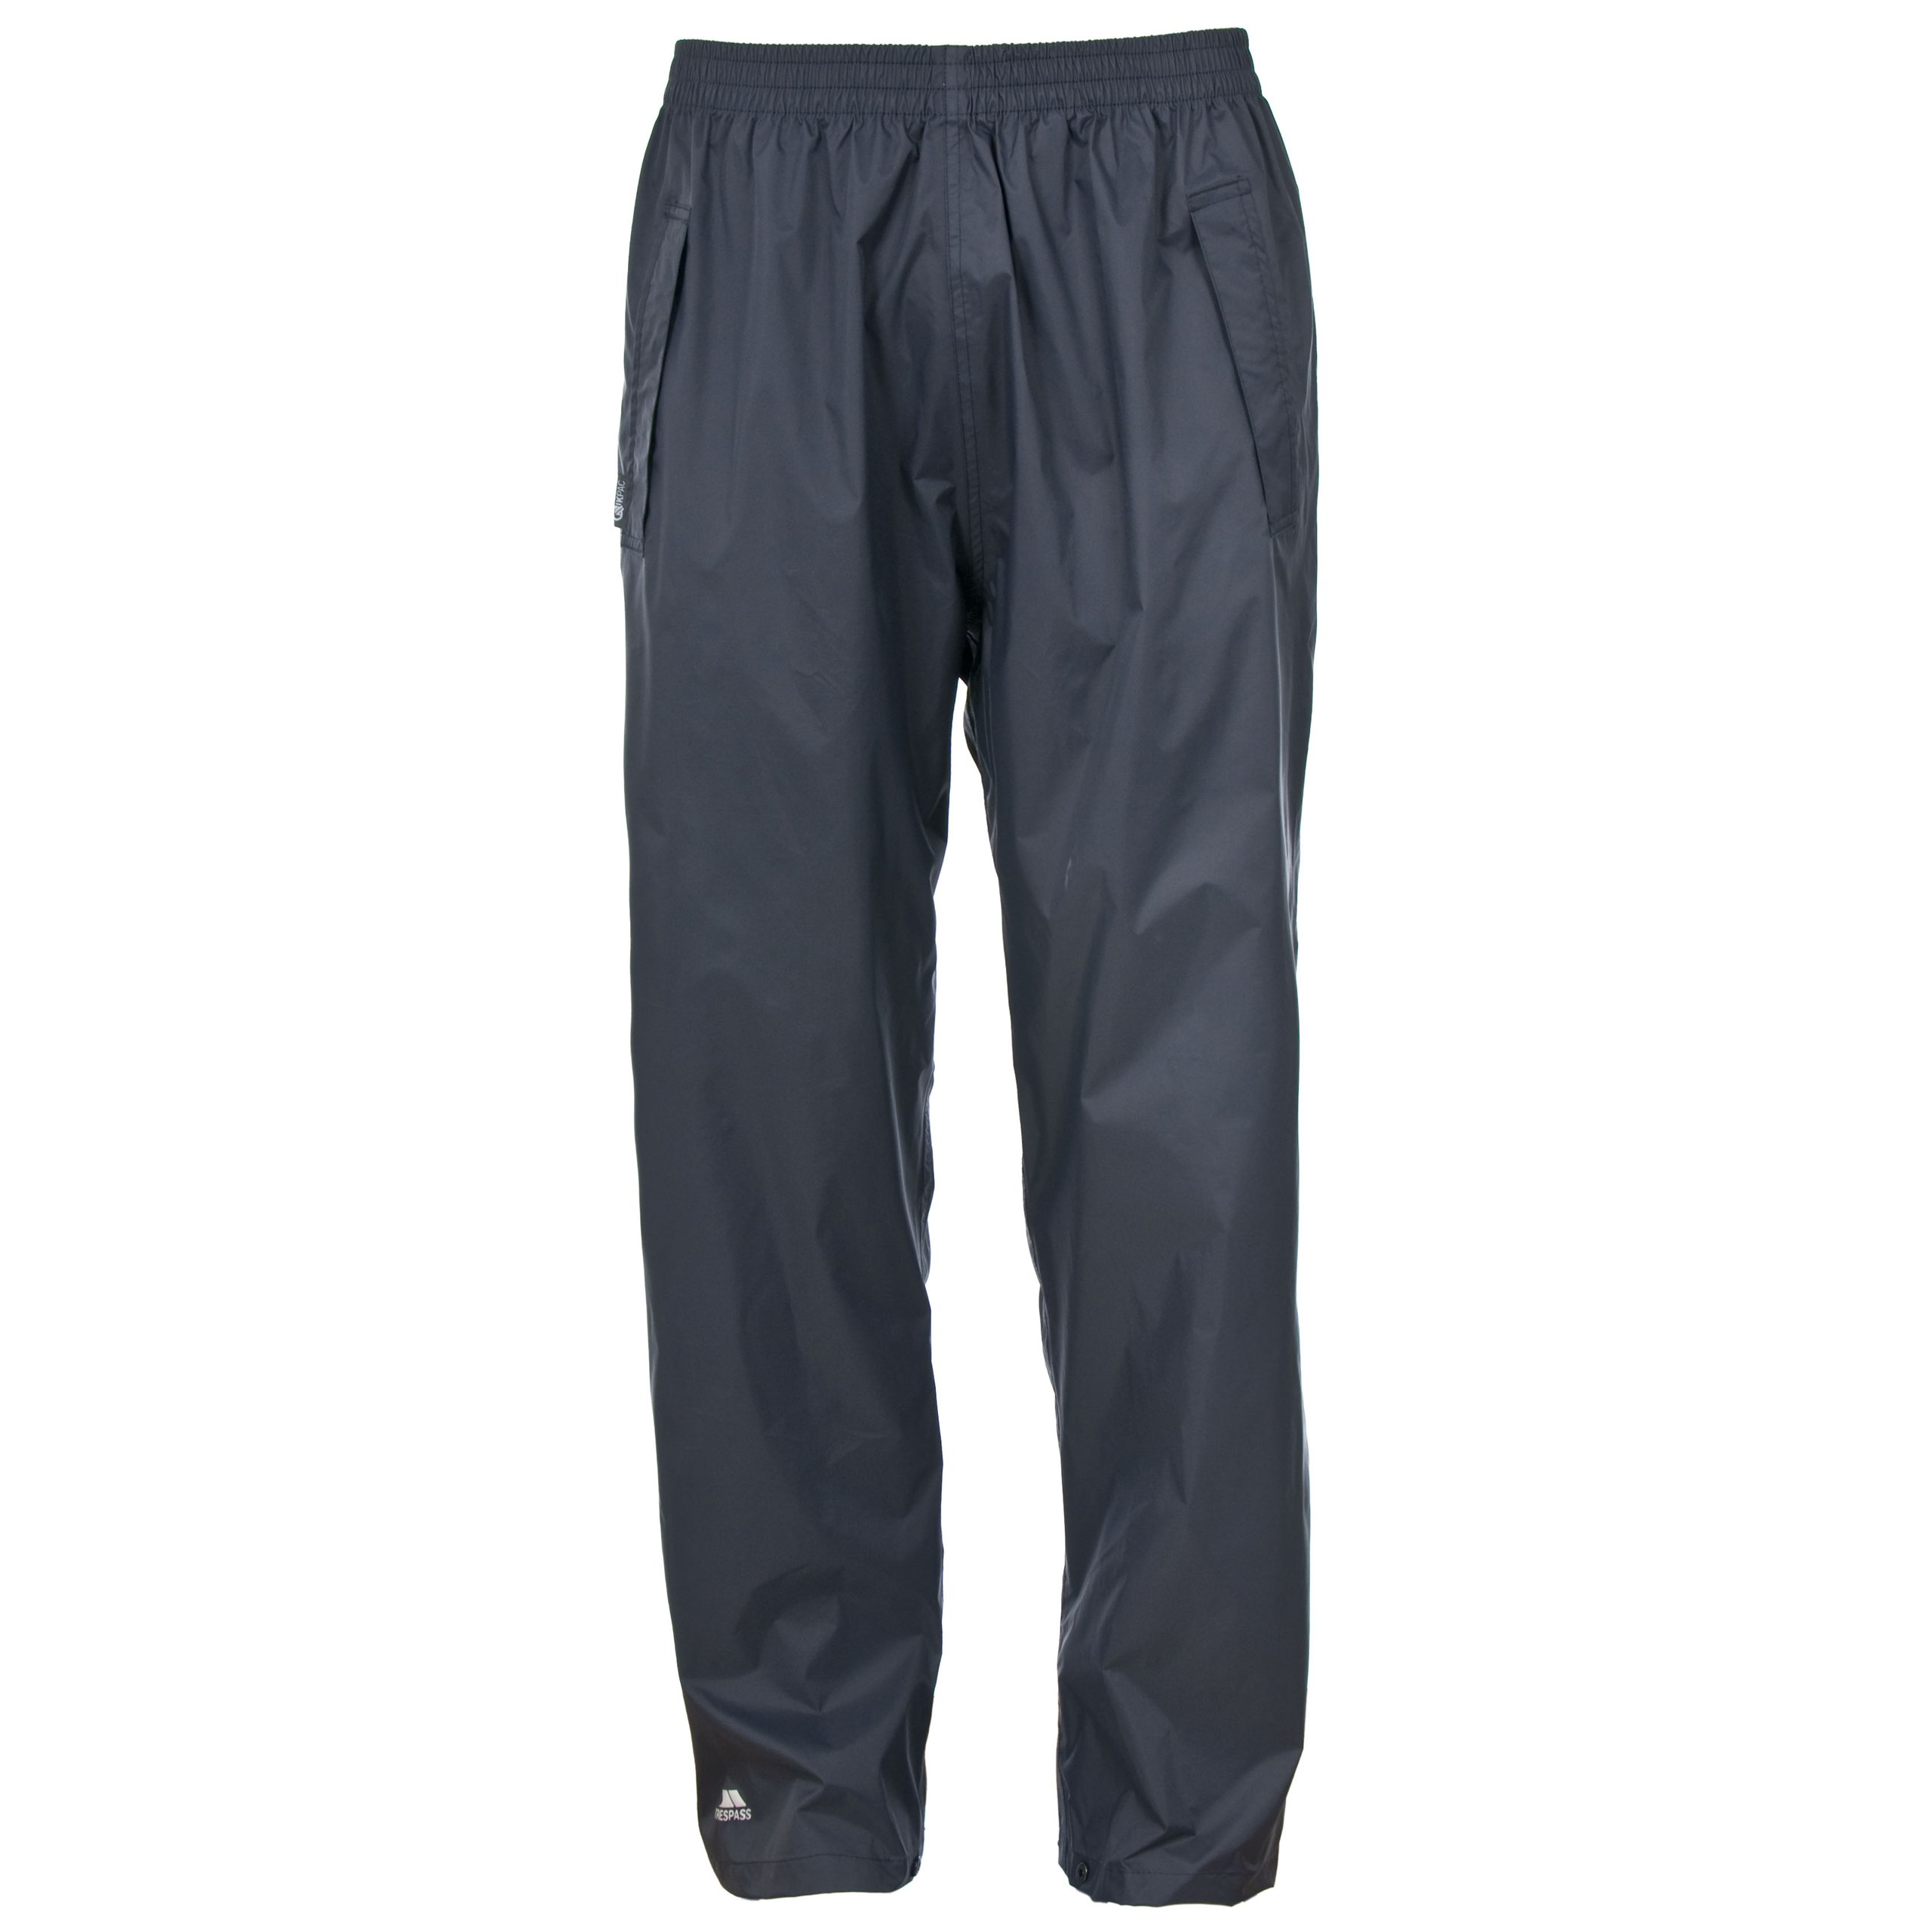 Qikpac Adults Packaway Breathable Waterproof Trousers